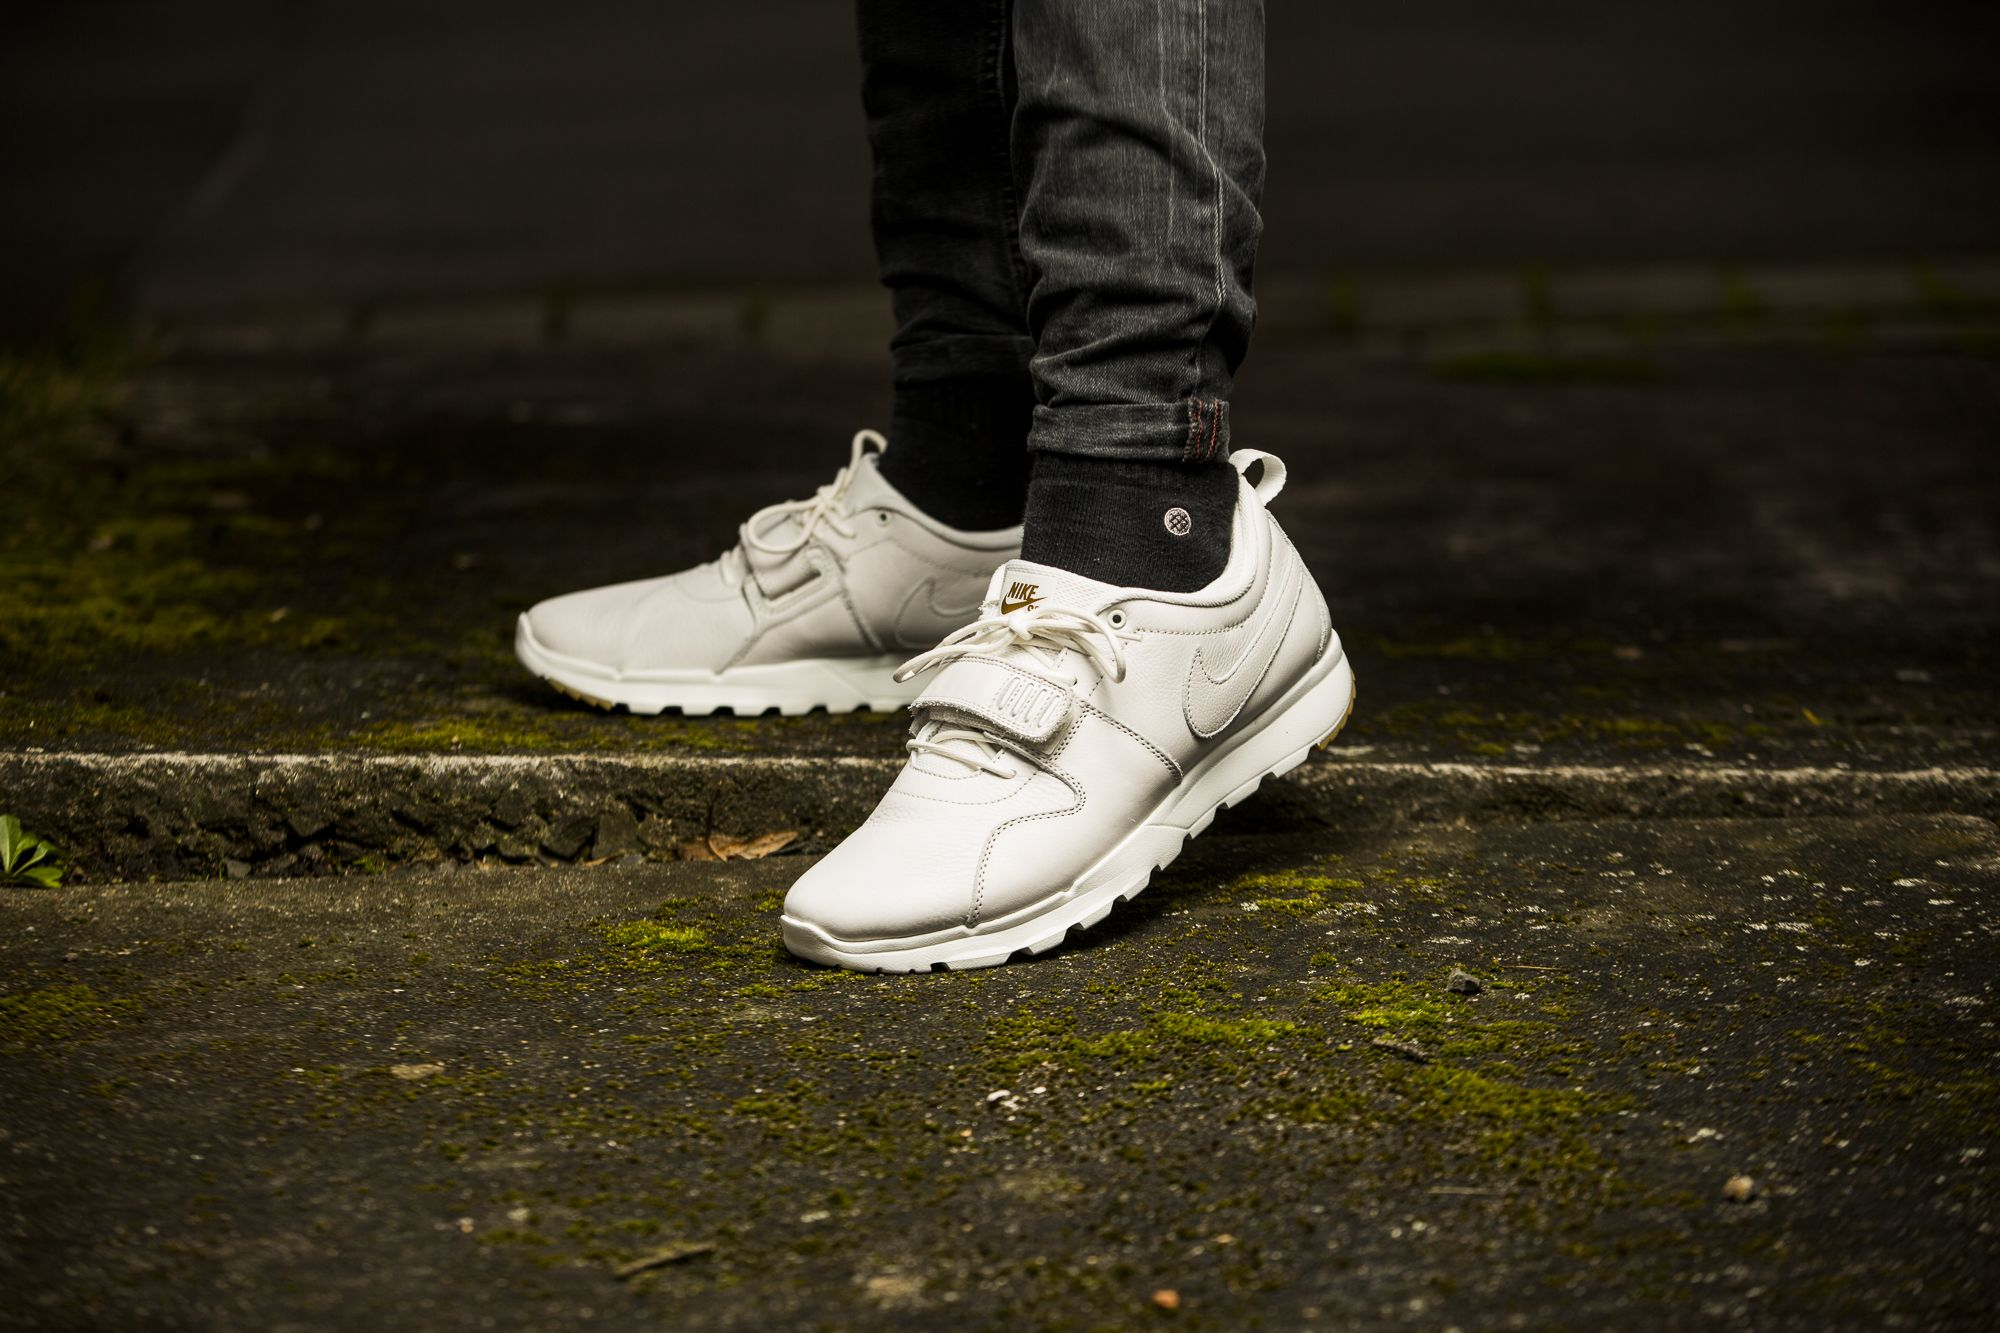 The Nike SB Trainerendor Premium is available at our shop now! EU 41 - 46 d88763cee2